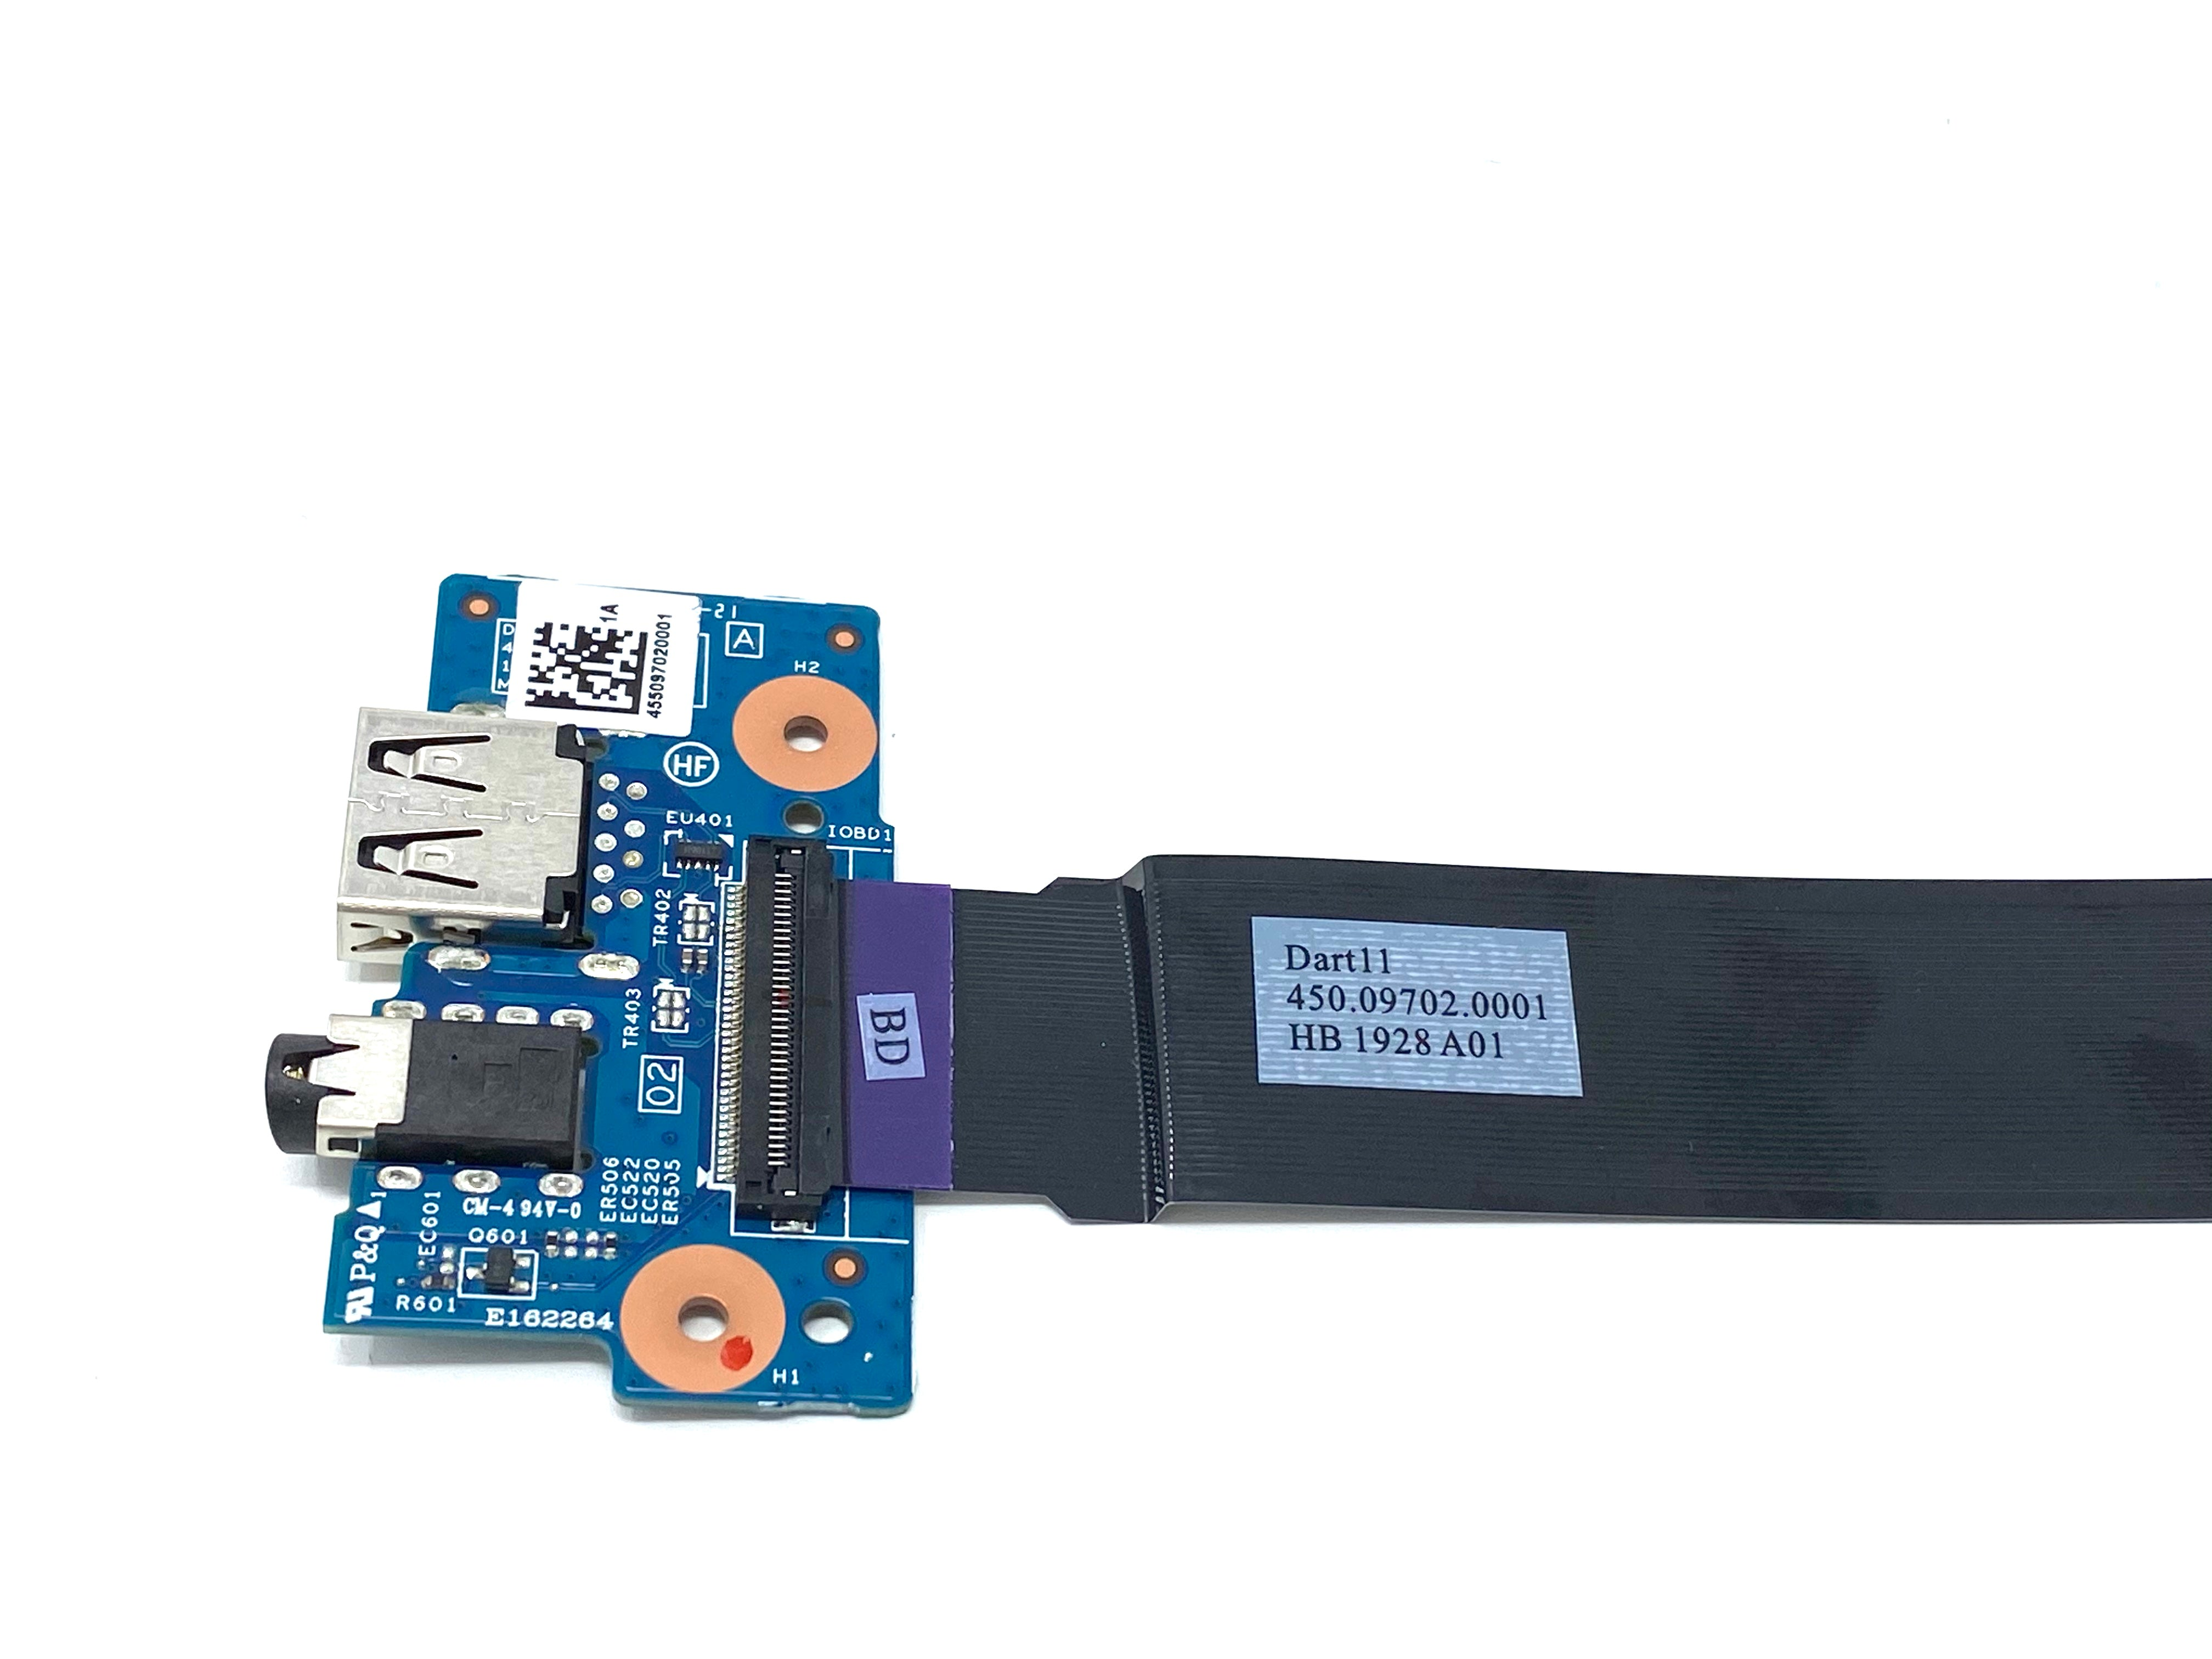 HP Chromebook 11 G5 & V-Series Audio USB Board w/Cable - 900816-001 / 448.09703.0011 / 450.09702.0001.